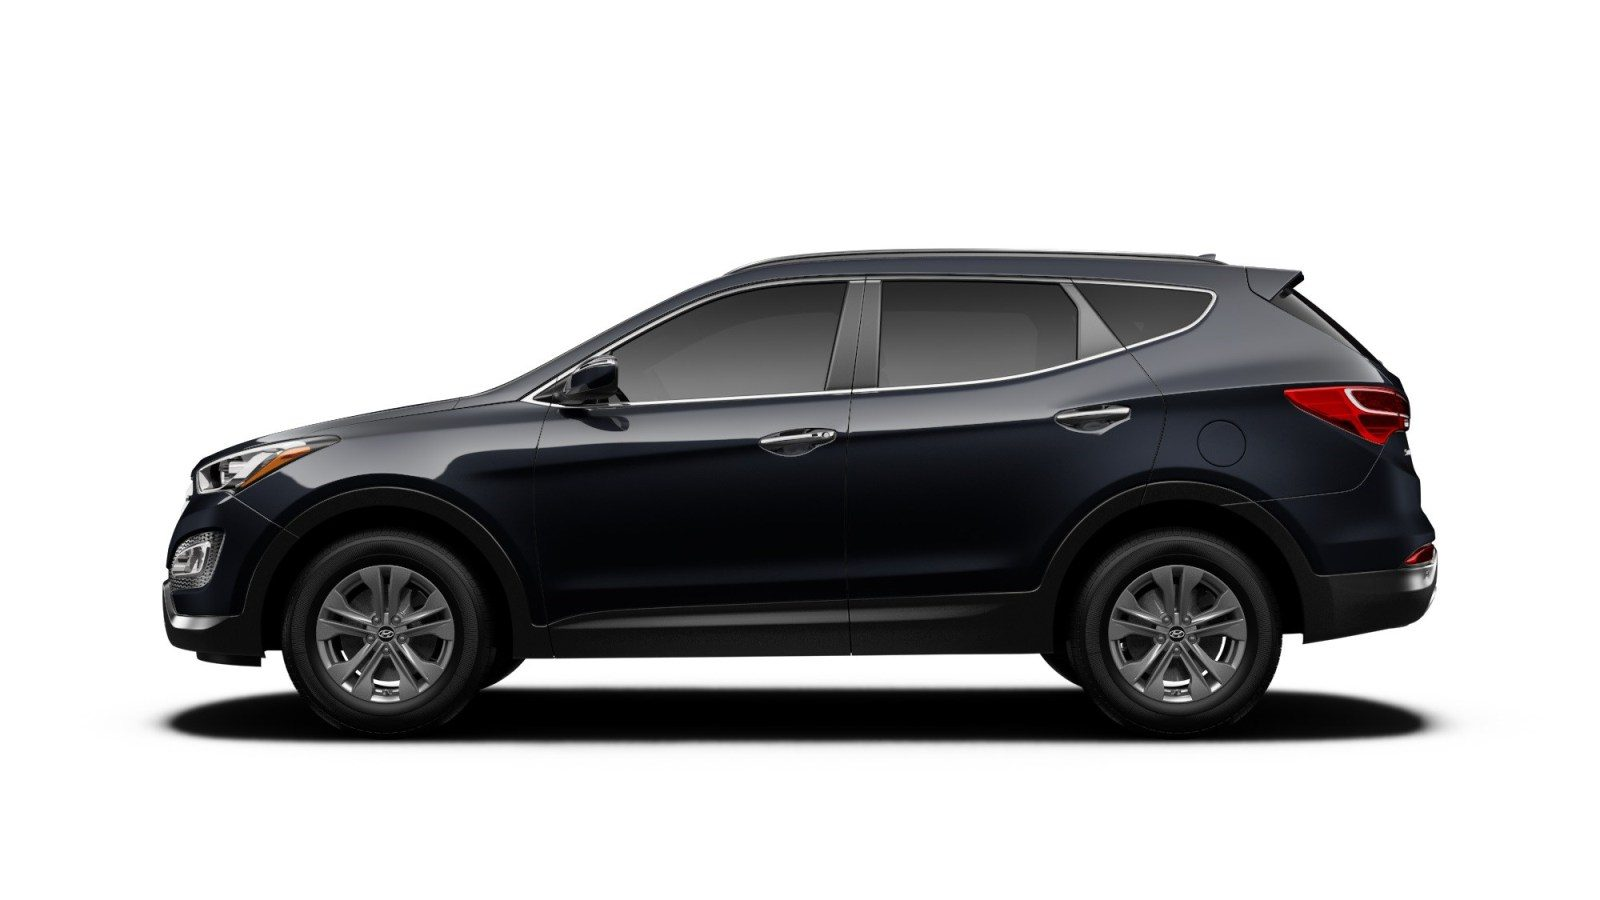 2014 hyundai sante fe sport vs lwb buyers guide with specs colors and pricing car revs. Black Bedroom Furniture Sets. Home Design Ideas